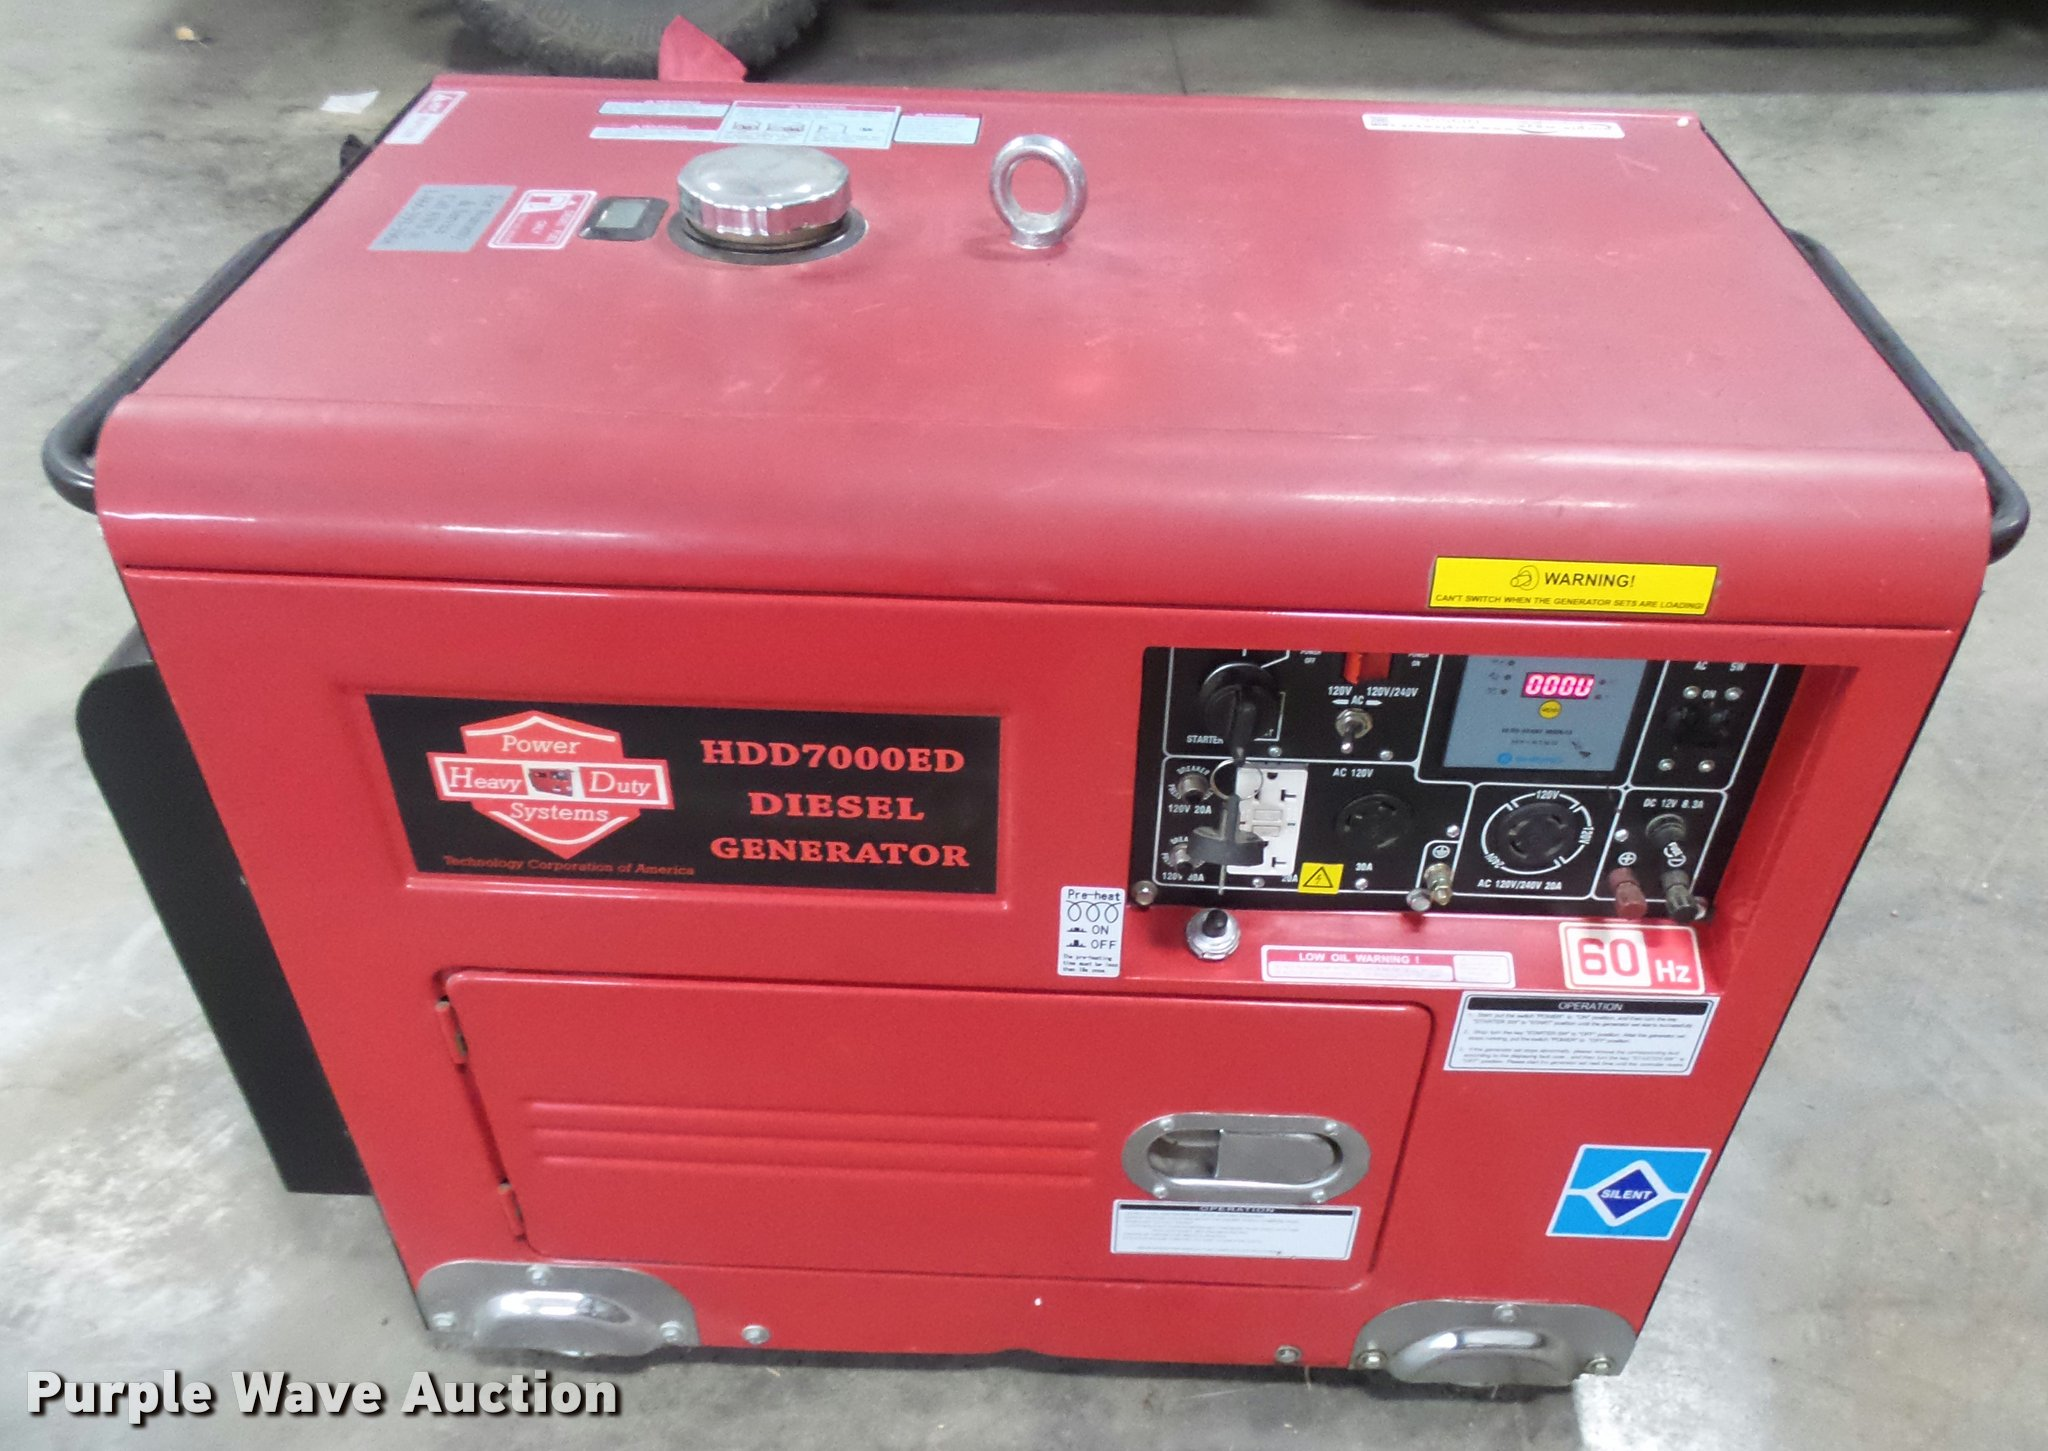 Power Systems HDD7000ED generator Item DI9556